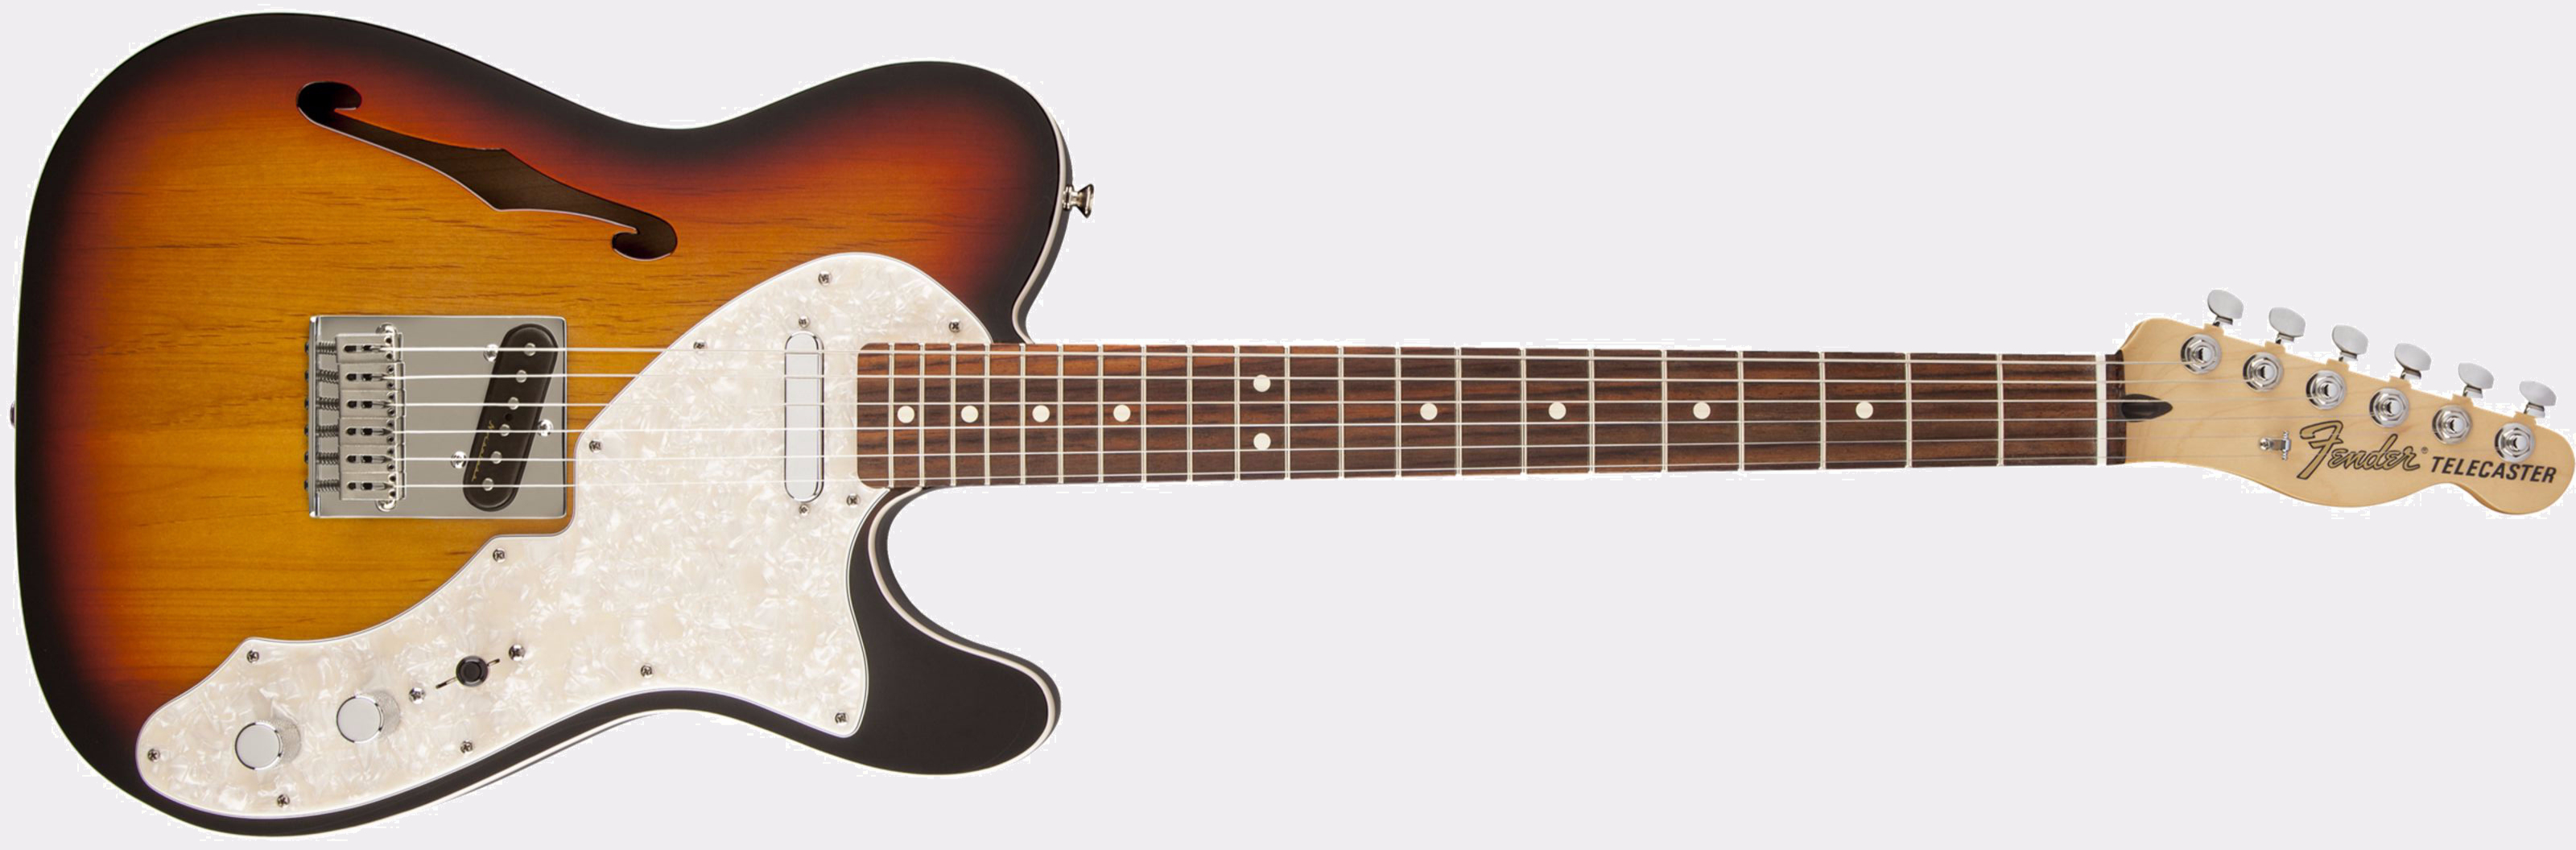 Deluxe Tele Thinline 3TS Front